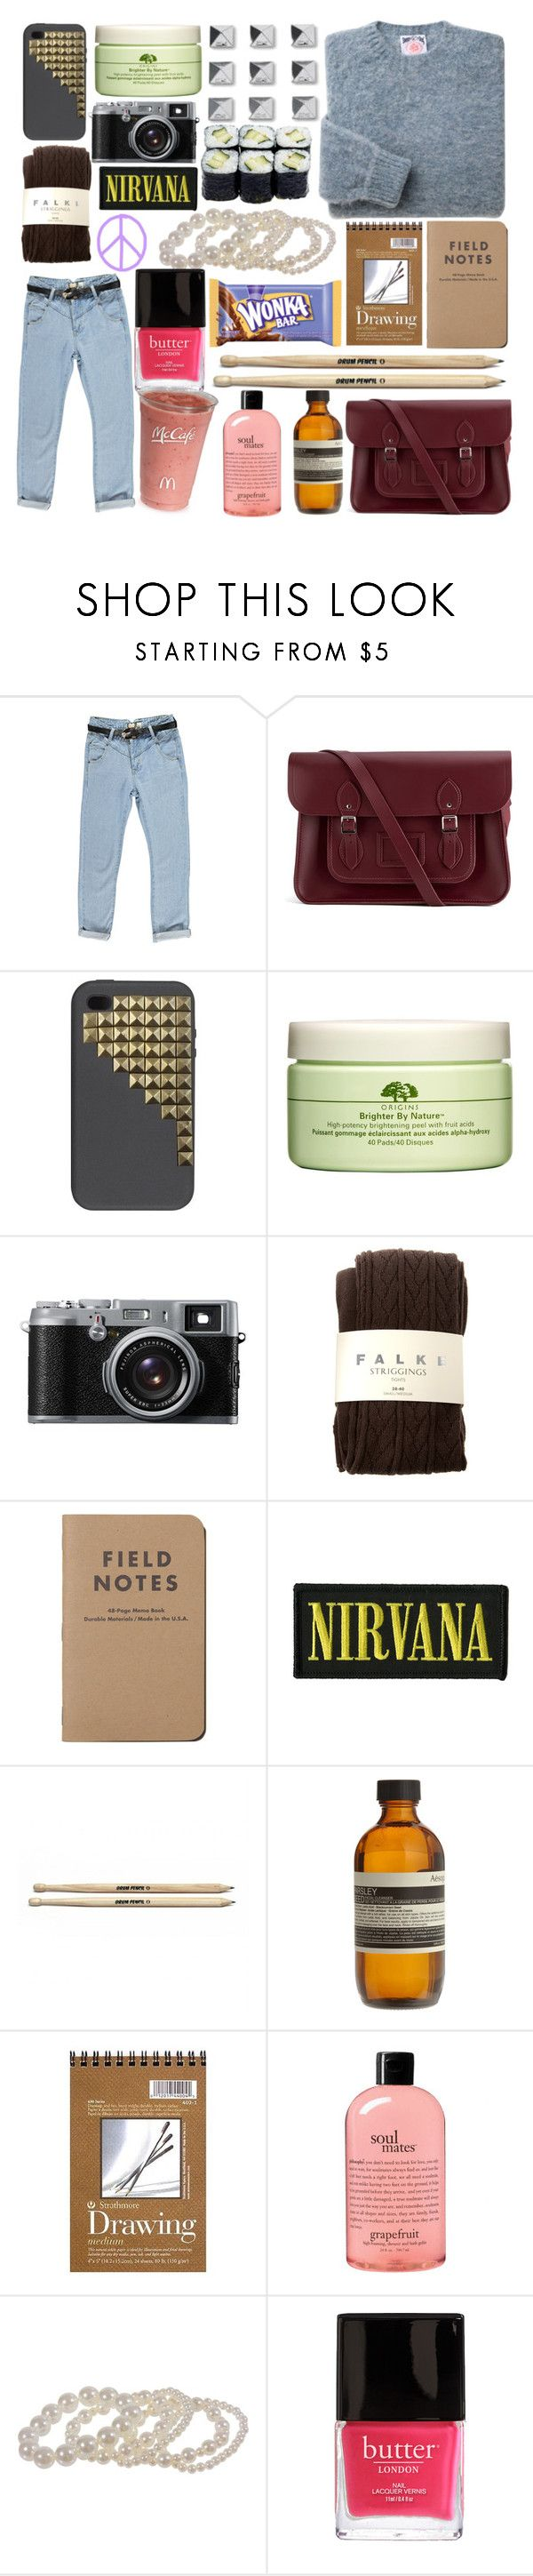 """smells like teen spirit"" by paper-towns ❤ liked on Polyvore featuring Boohoo, The Cambridge Satchel Company, Fashion Lab, Origins, Dakine, John Lewis, Falke, FRUIT, Aesop and philosophy"